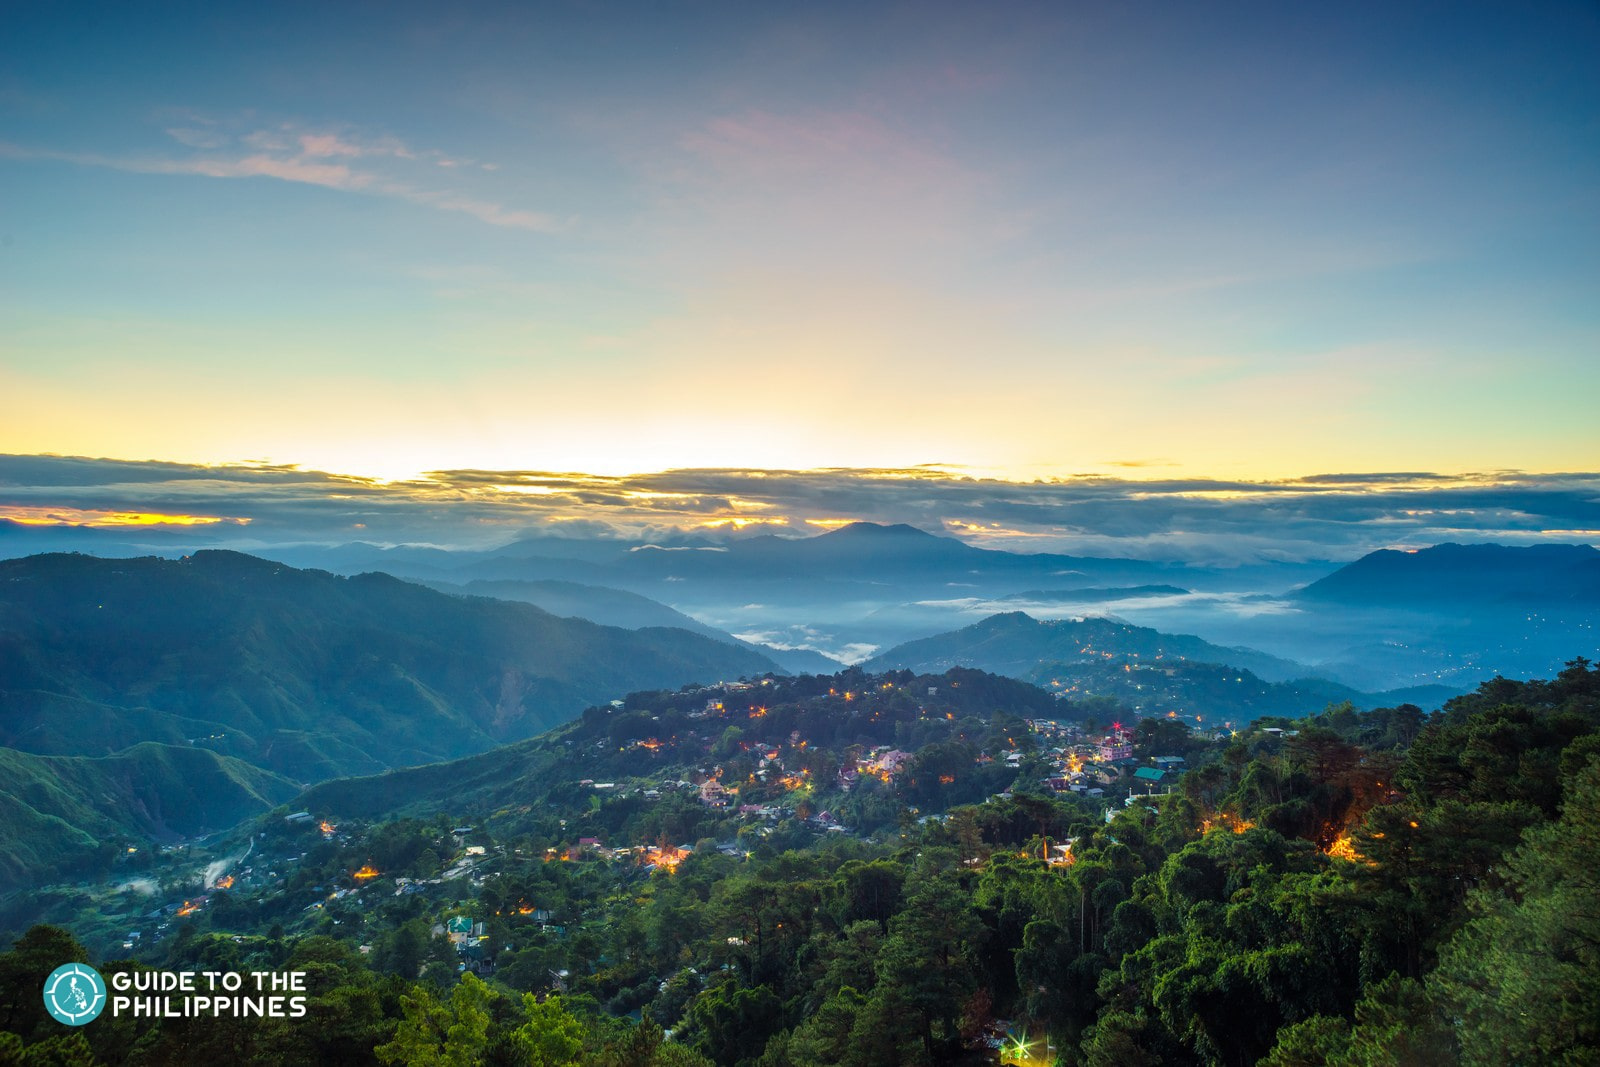 View of the sunset from Mines View Park in Baguio City